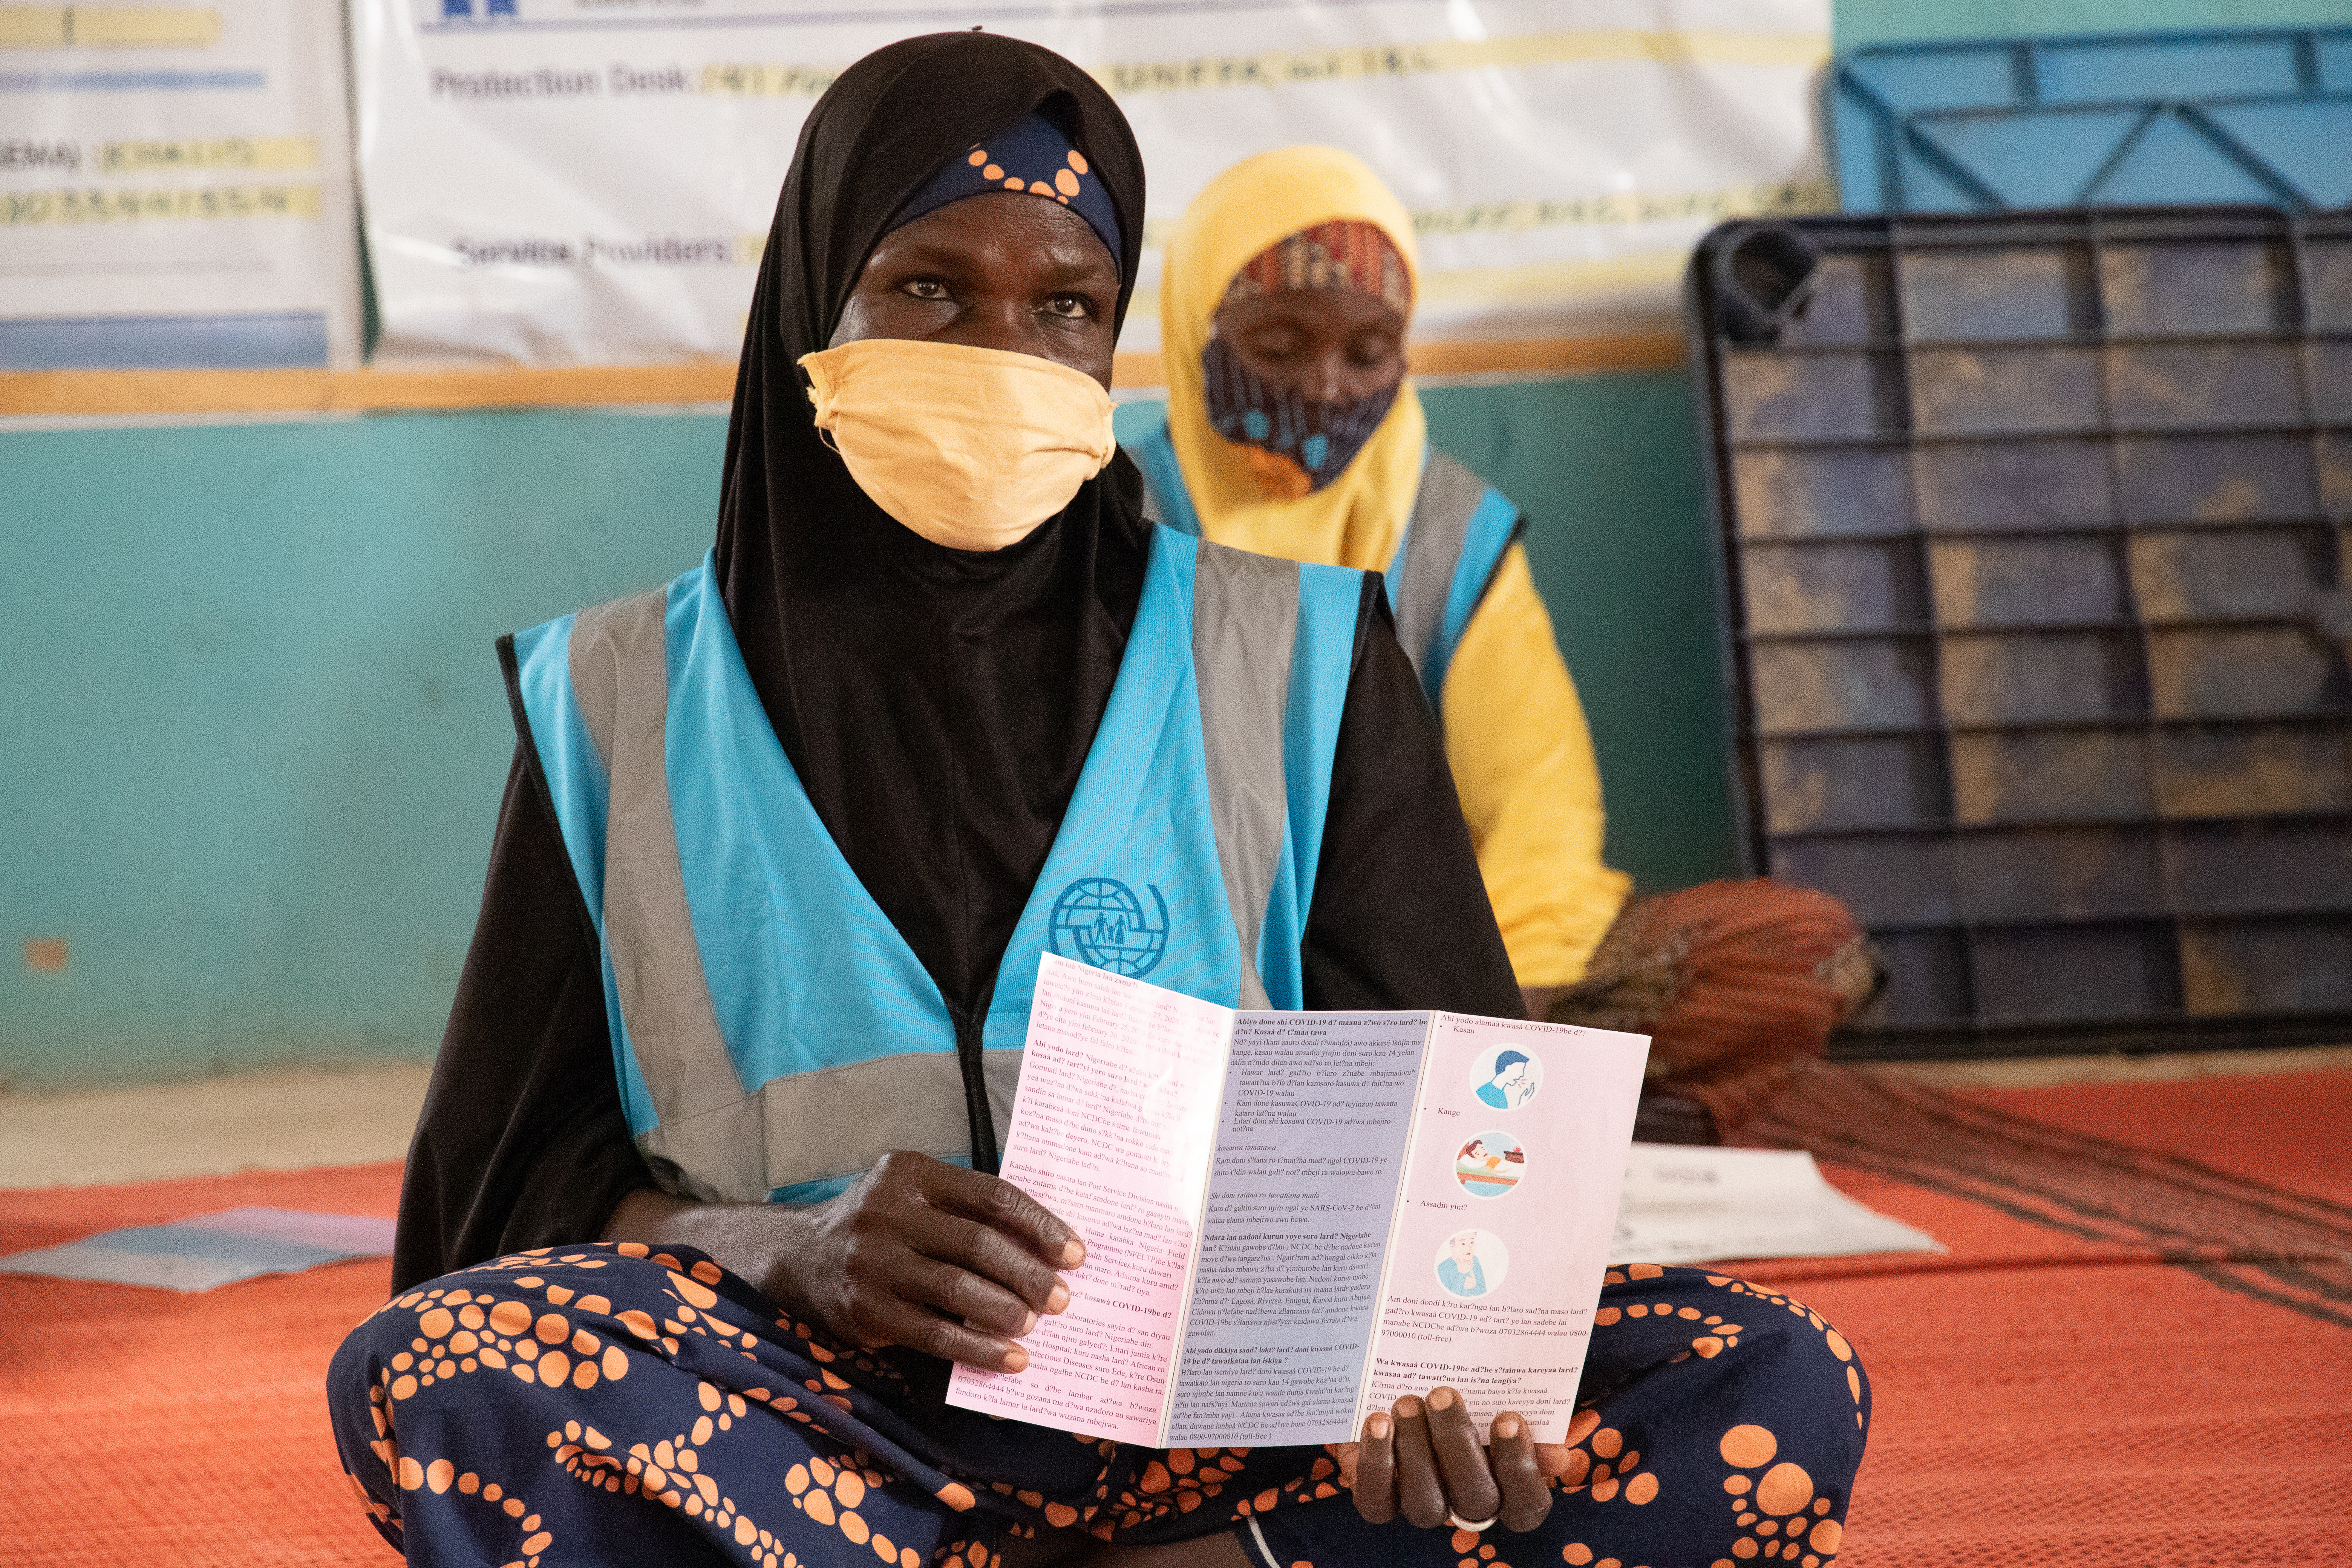 A group of IDP women discuss COVID-19 prevention measures at NYSC camp. Photo: Mshelia Yakubu/IOM 2021